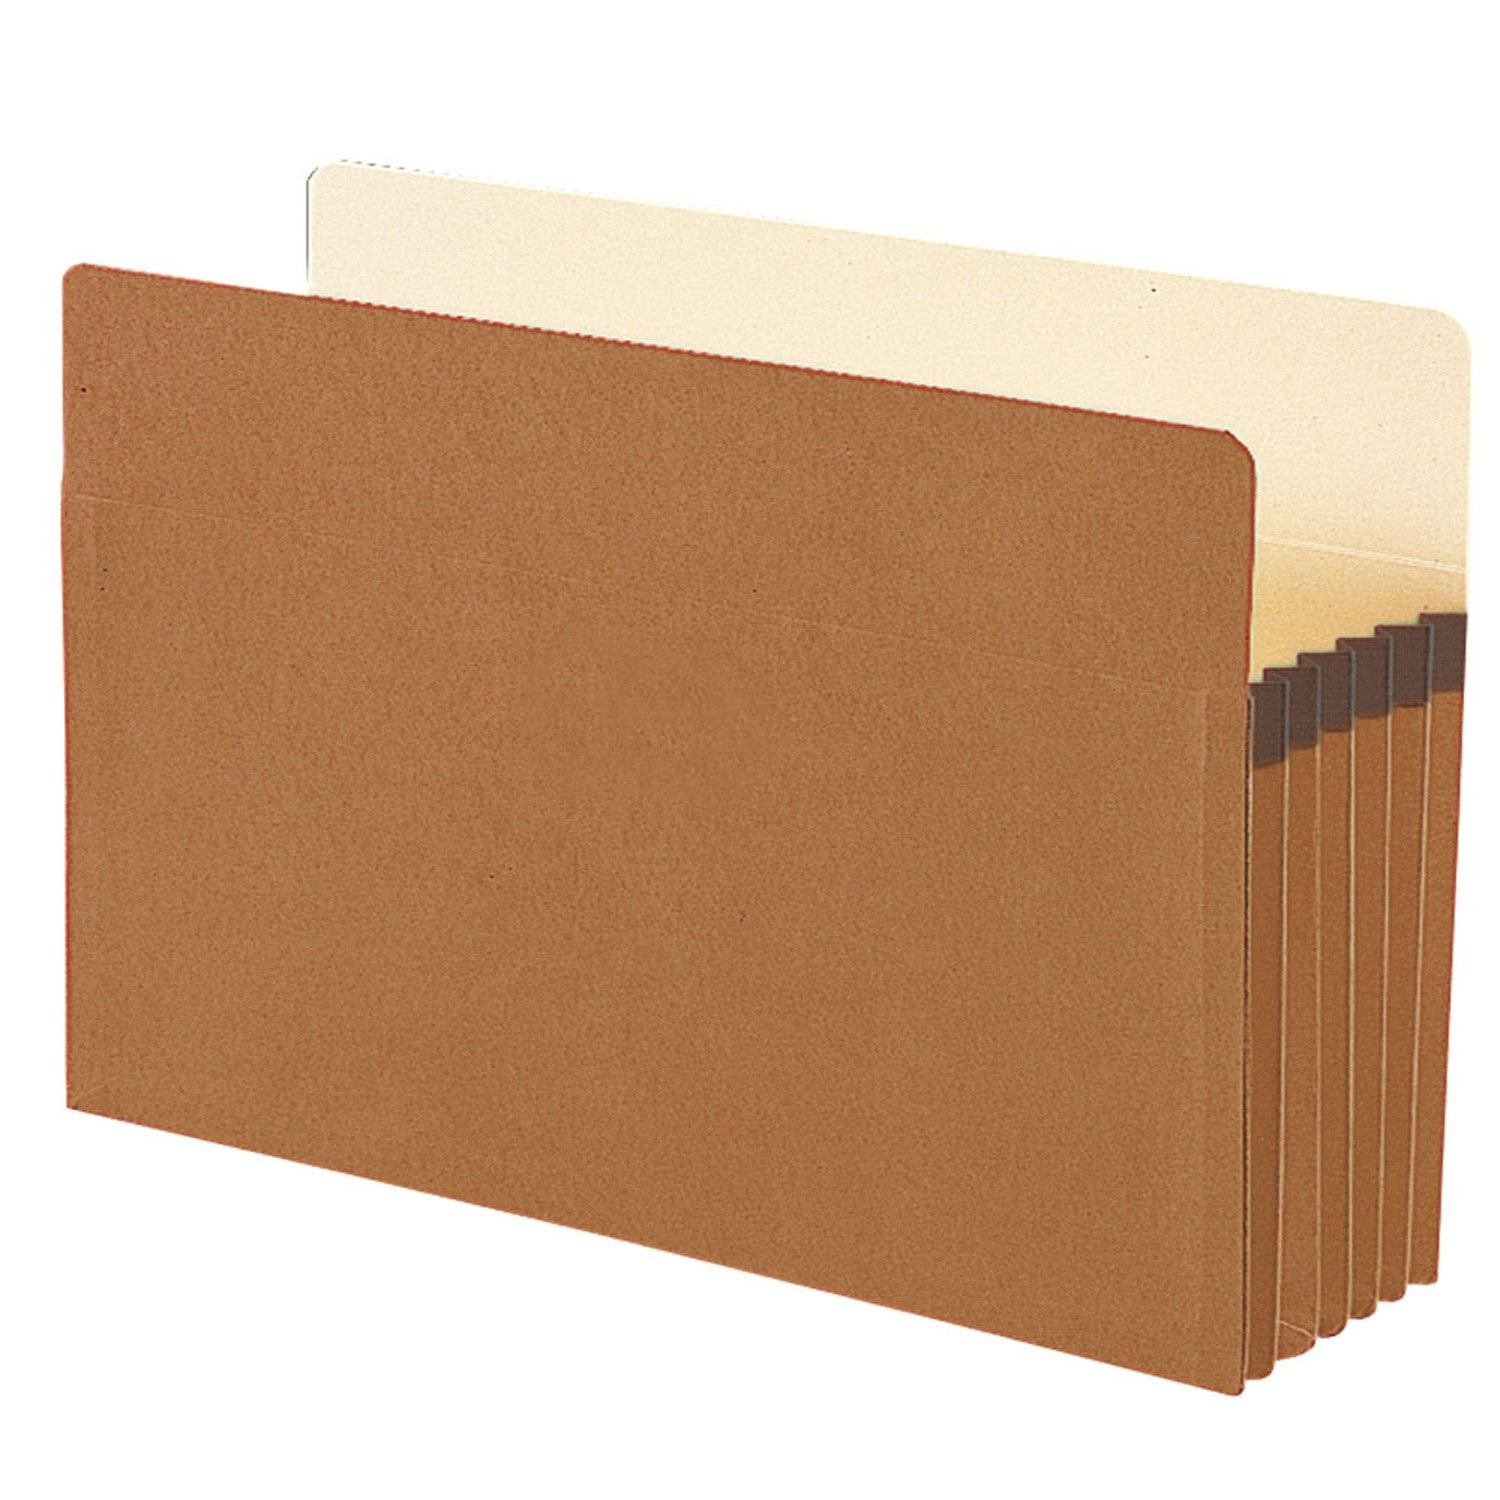 Smead 100 Percent Recycled Pockets, 5-1/4' Expansion, Legal Size, Redrope, 10 Per Box (74206) 5-1/4' Expansion